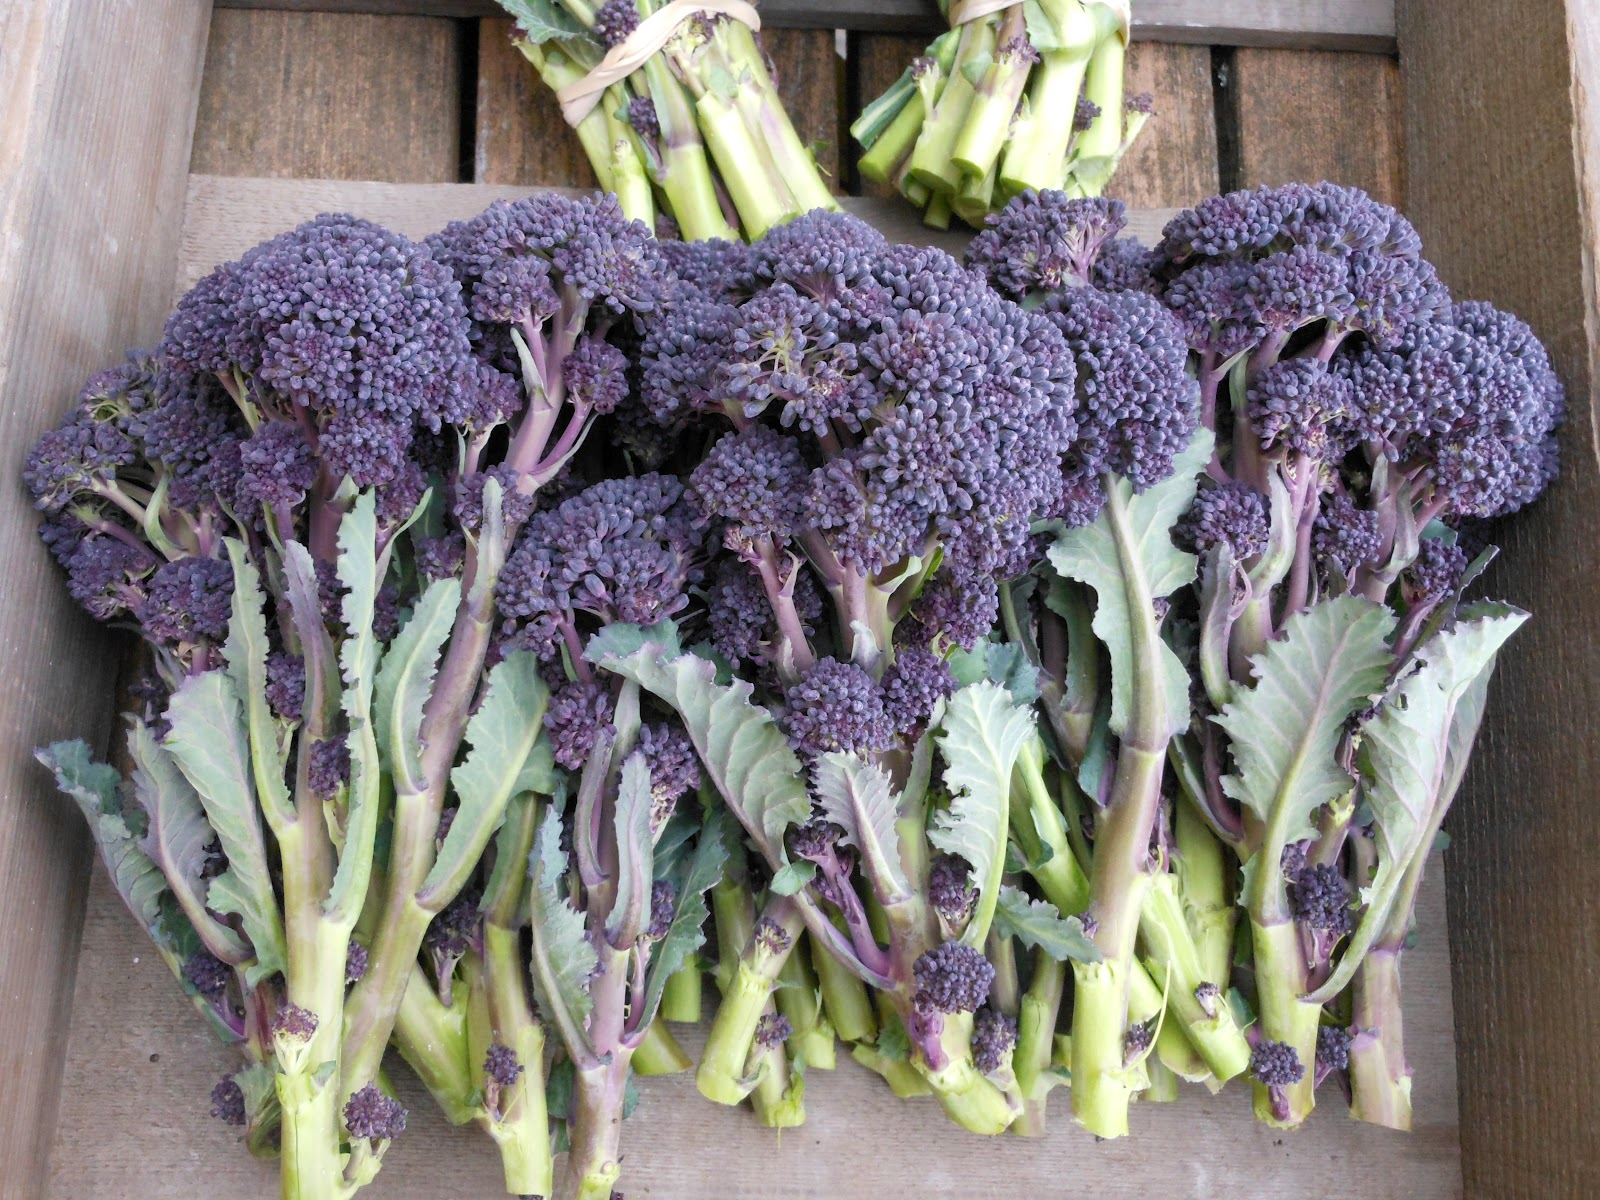 We Have Hybrid Purple Sprouting Broccoli Seed In Stock Two Varieties Were Stars Our Winter Trials And Been Able To Get Untreated For